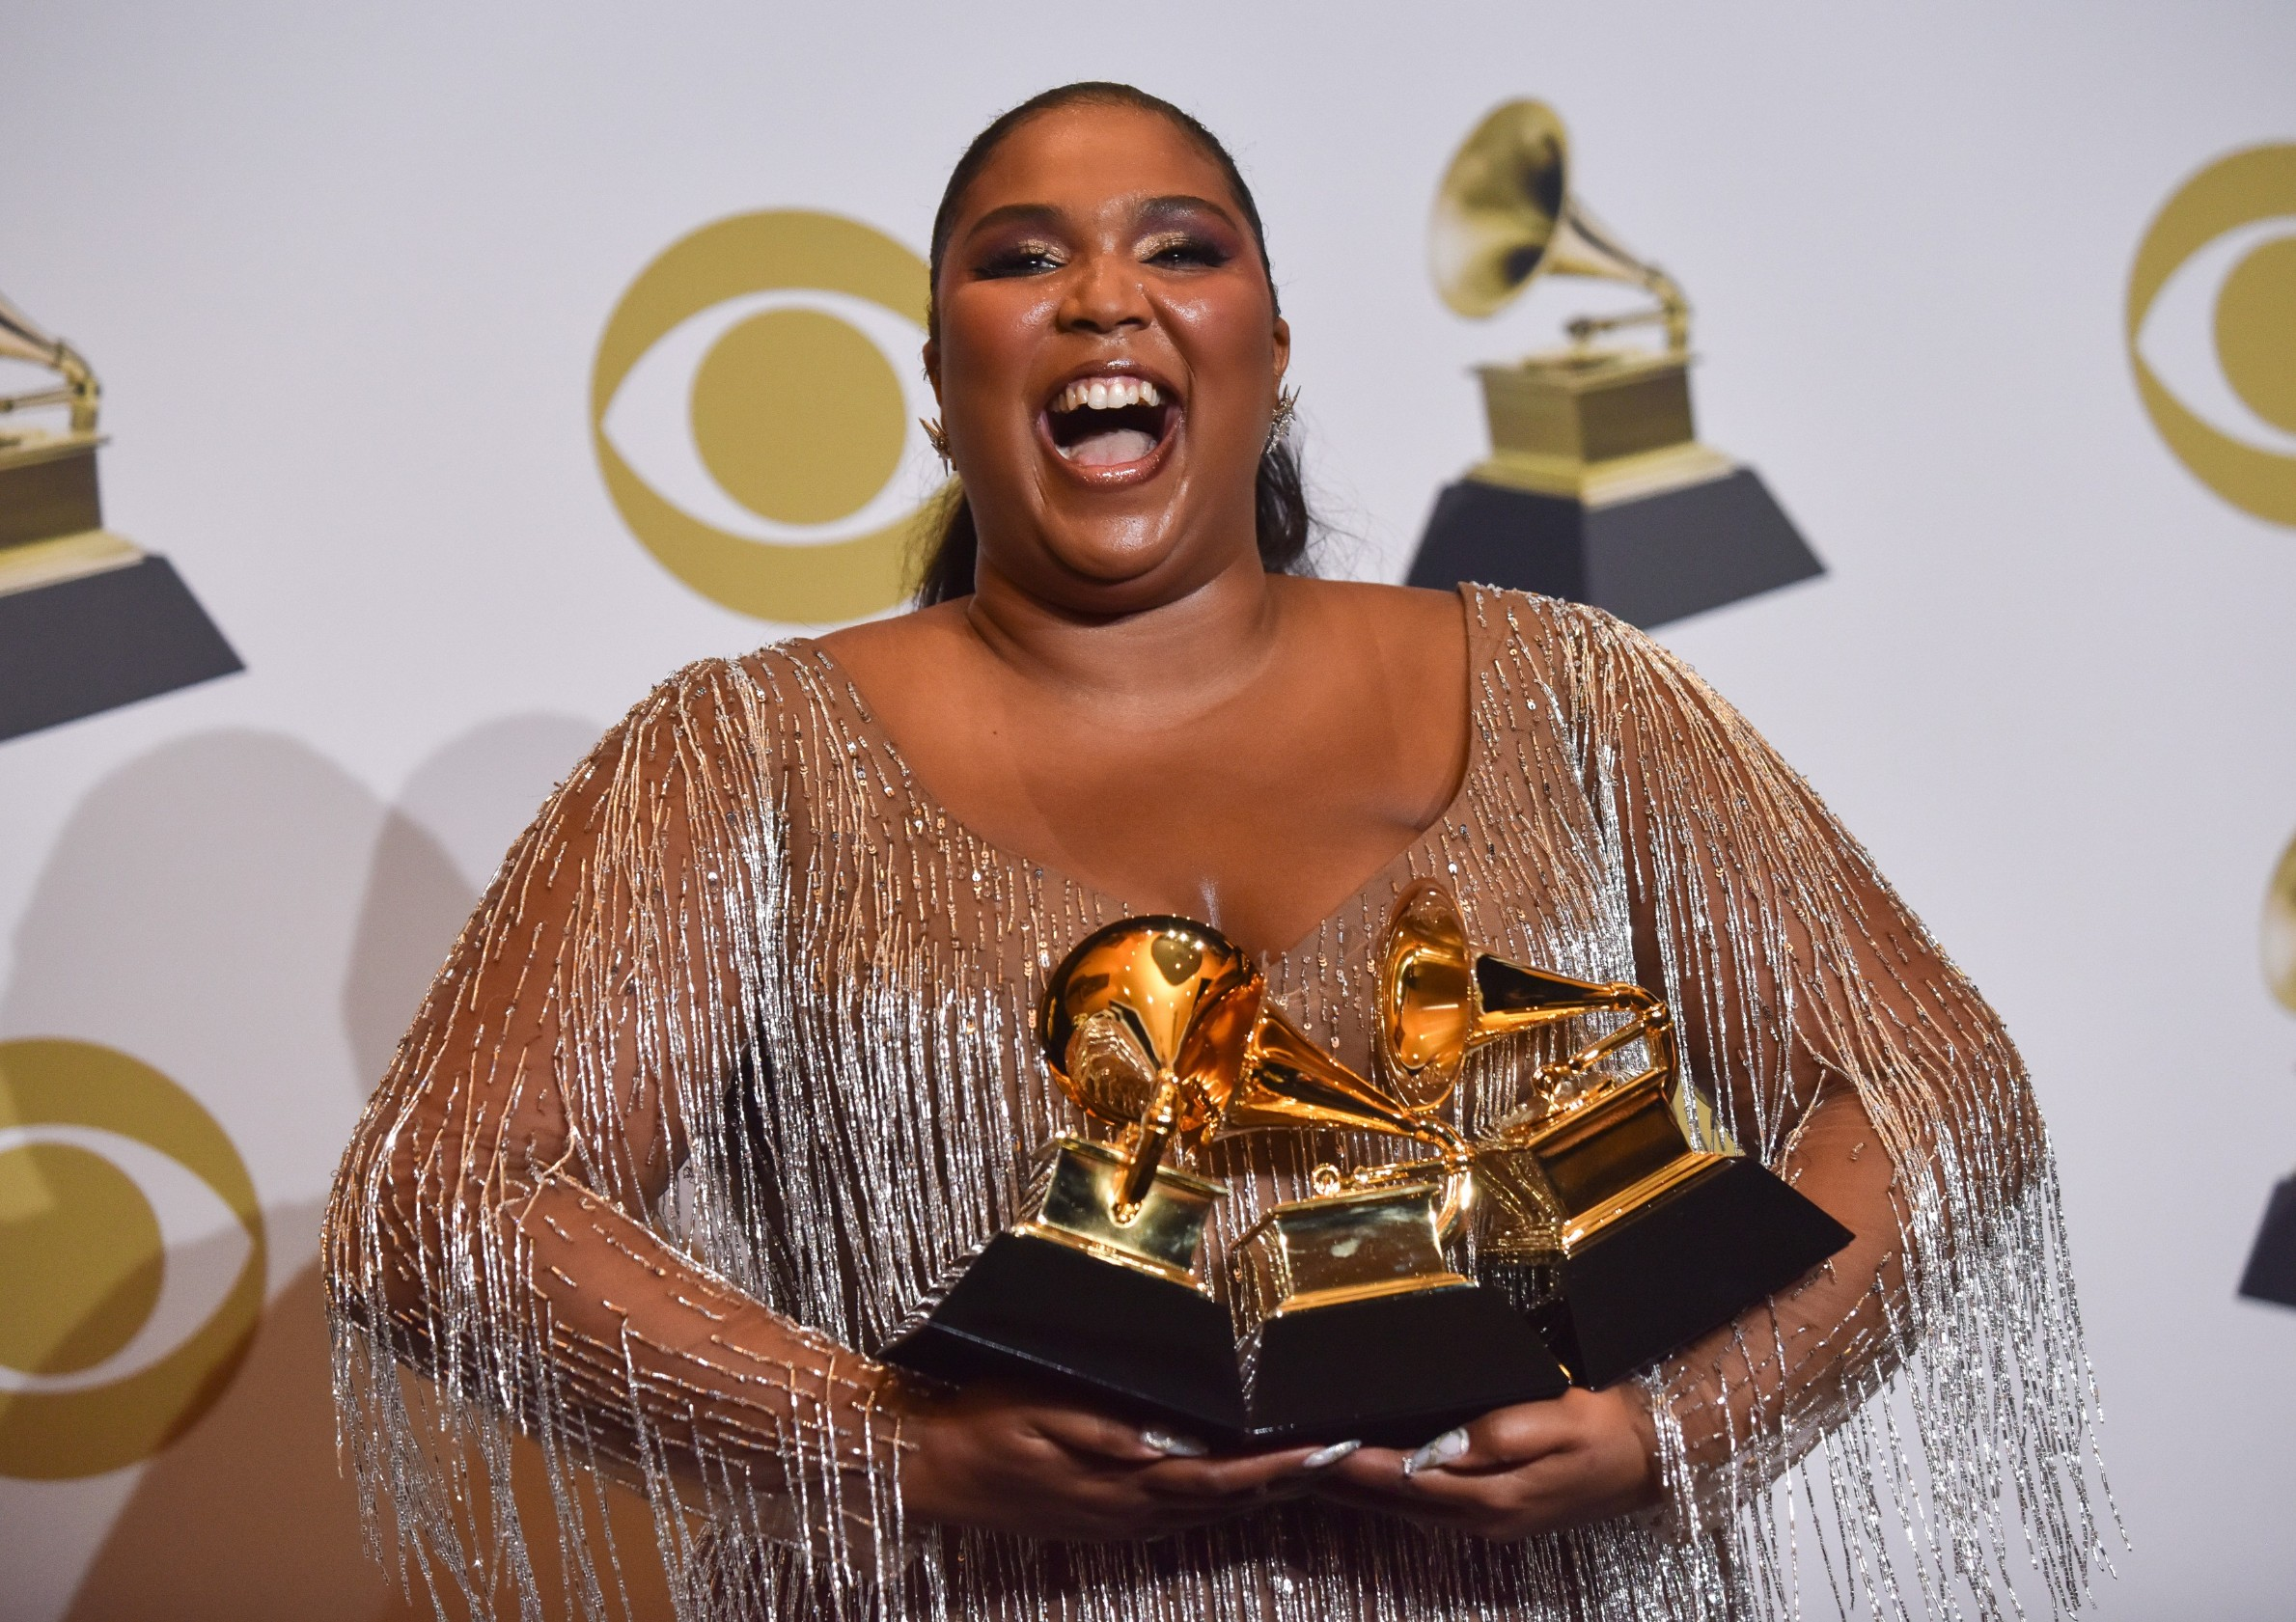 Lizzo appears backstage with her award for Best Traditional R&B Performance for 'Jerome' and Best Urban Contemporary Album award for 'Cuz I Love You (Deluxe),' during the 62nd annual Grammy Awards held at Staples Center in Los Angeles on Sunday, January 26, 2020 .  Photo by /UPI, Image: 494979045, License: Rights-managed, Restrictions: , Model Release: no, Credit line: CHRISTINE CHEW / UPI / Profimedia